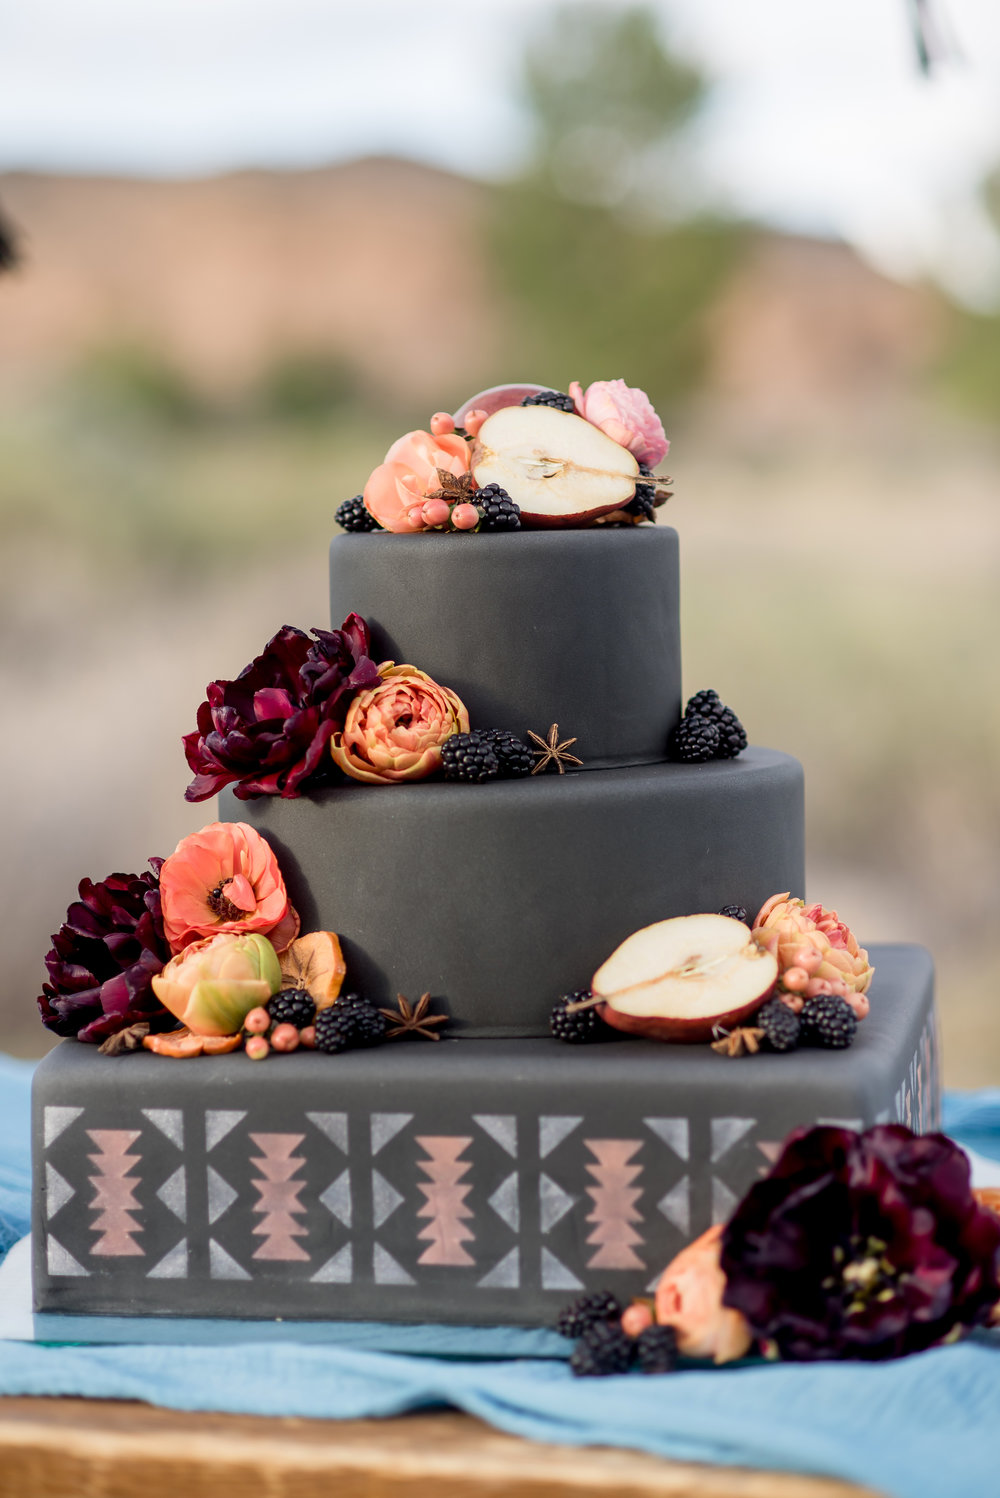 THIS. CAKE. GUYS. Black fondant forever!!!!